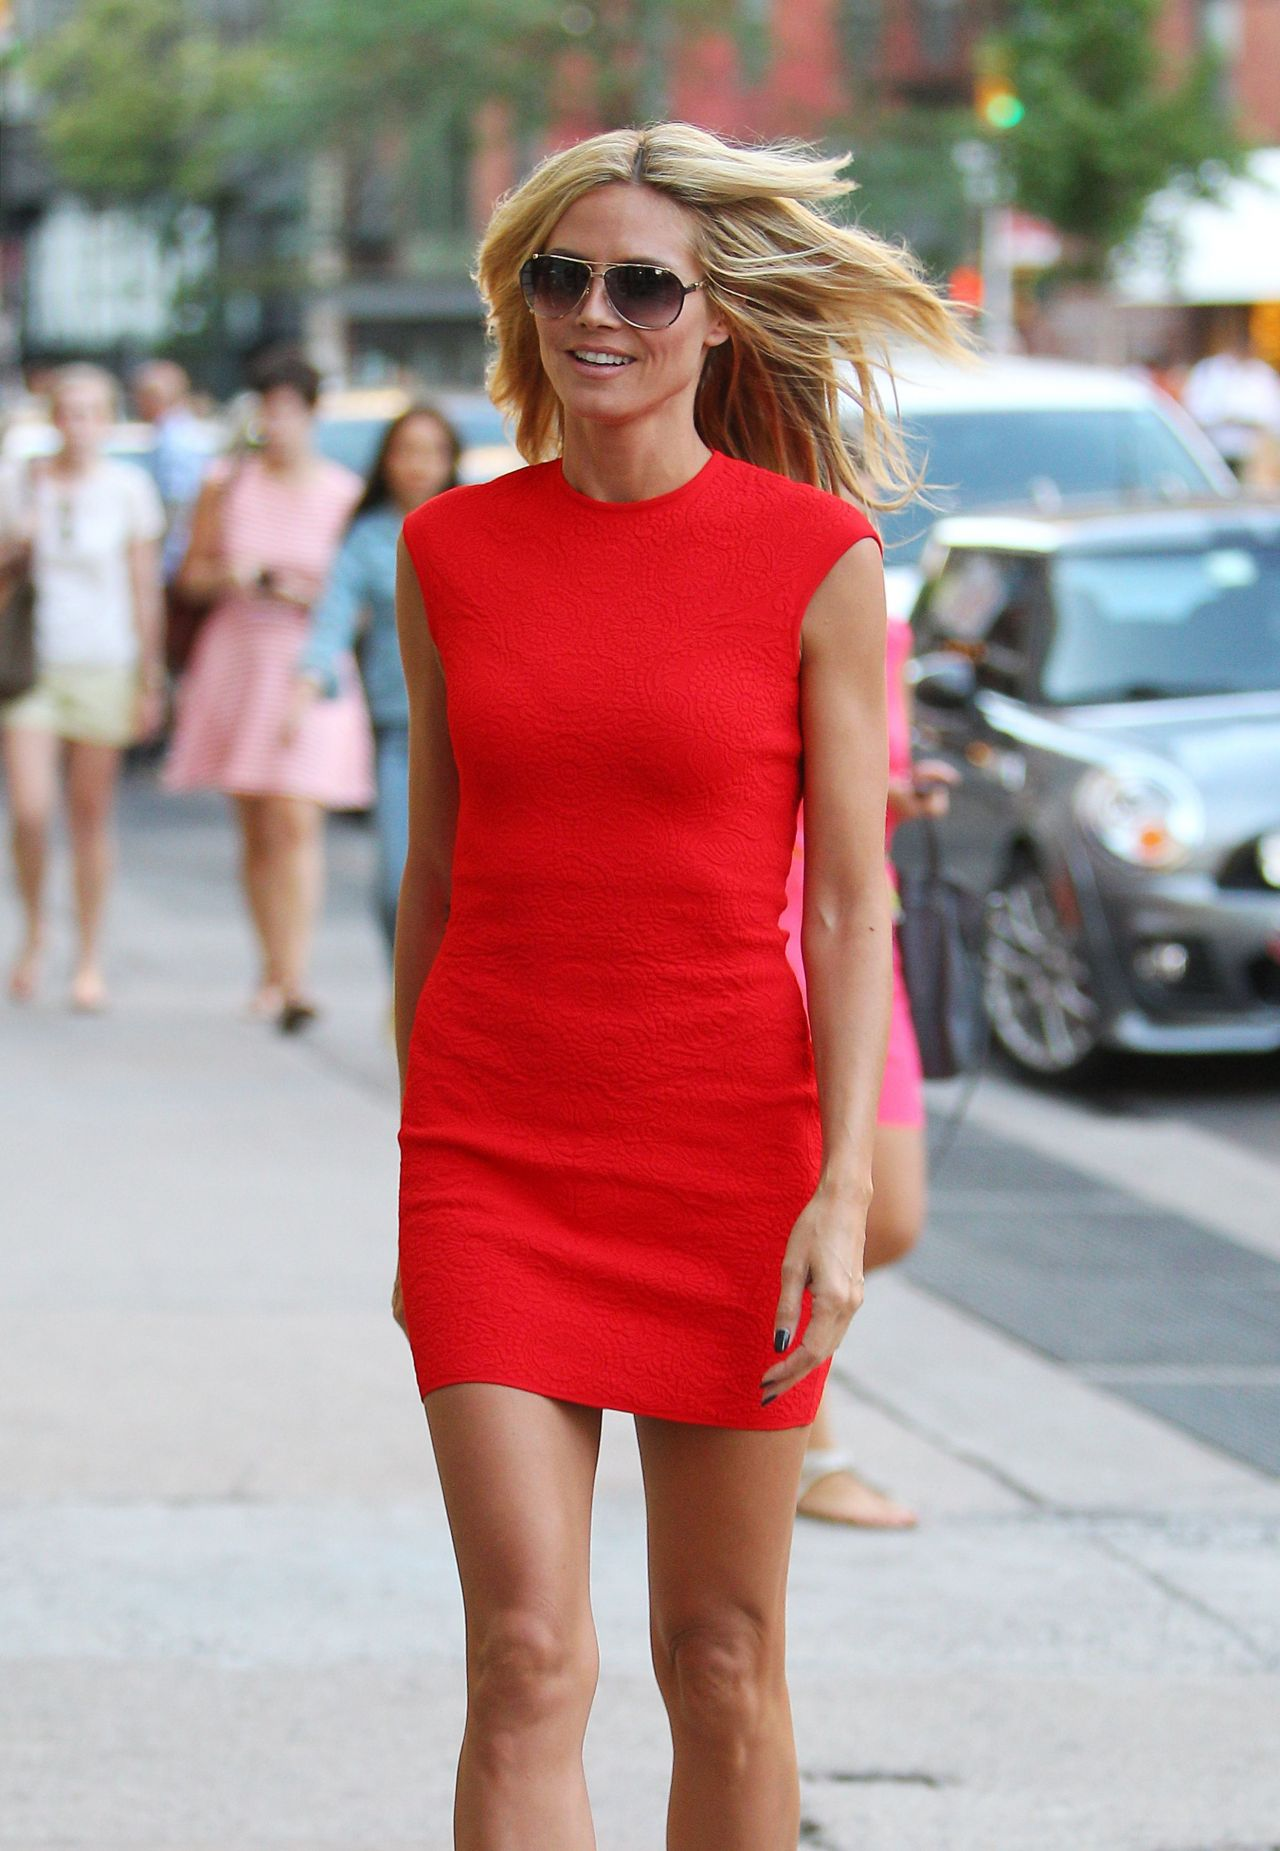 Heidi Klum in Red Dress - Out in New York City - June 2014